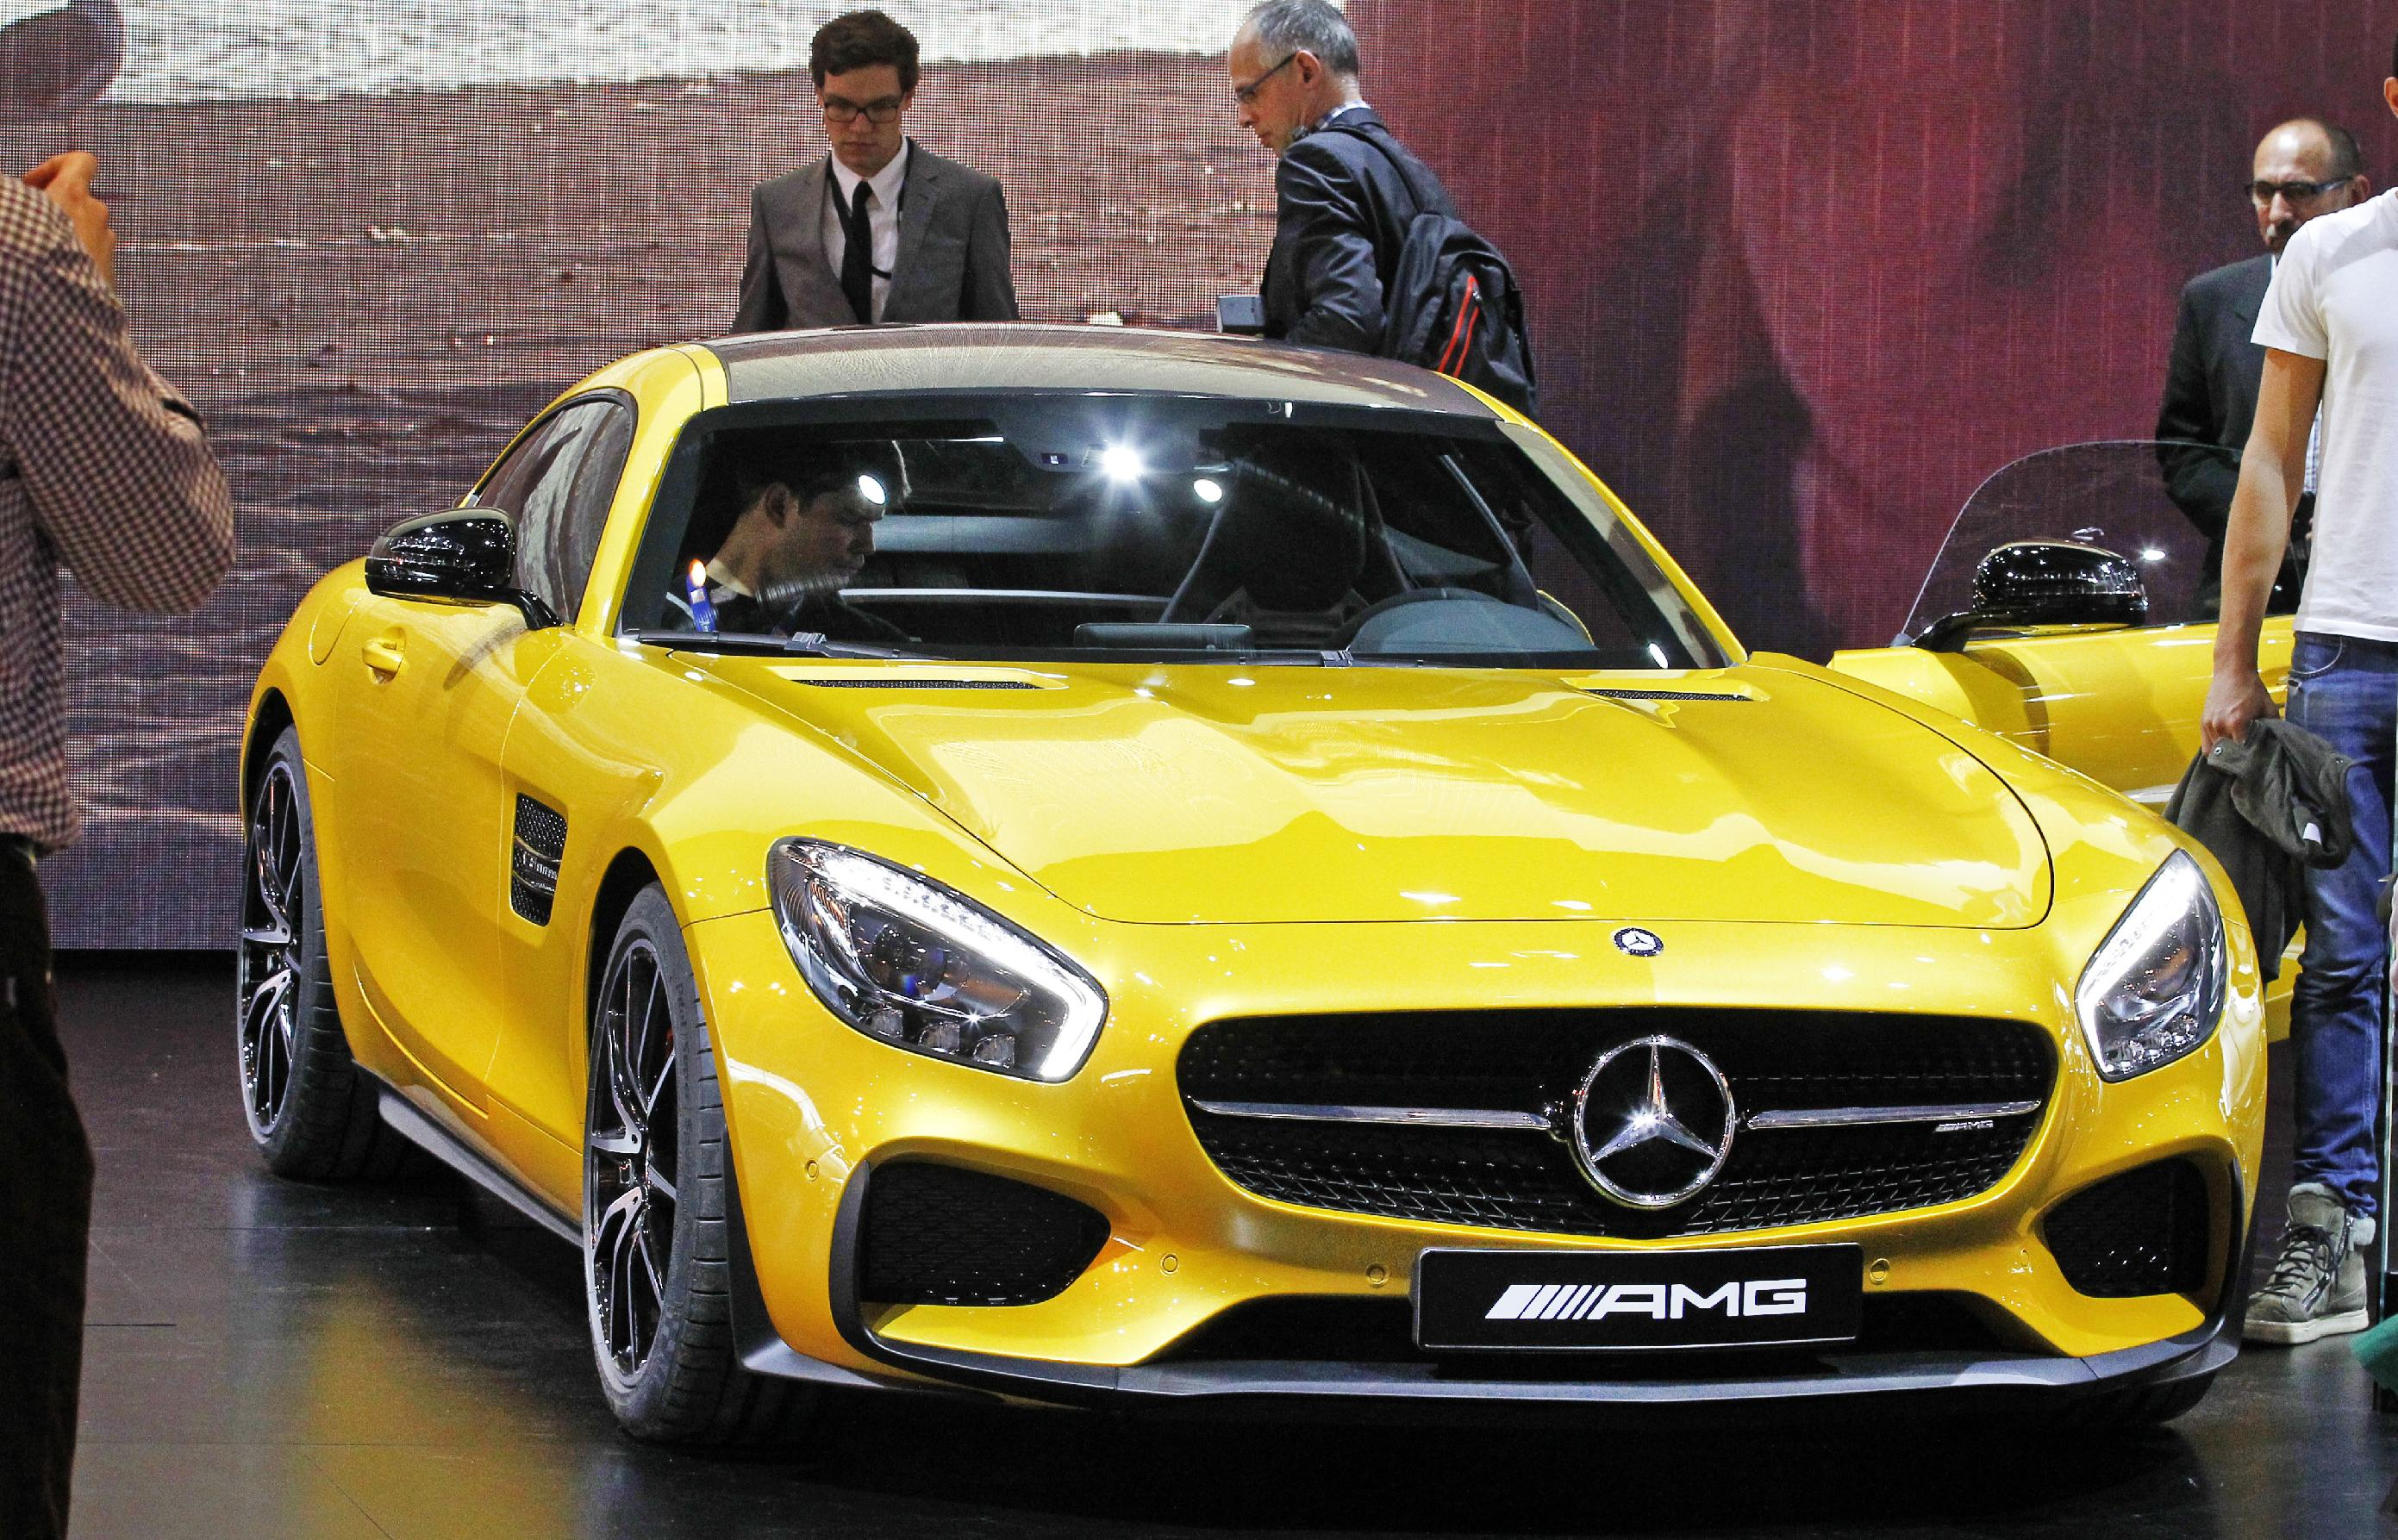 The Mercedes AMG GT S is presented at the Paris Motor Show, in Paris, Friday Oct. 3, 2014.  (AP Photo/Remy de la Mauviniere)